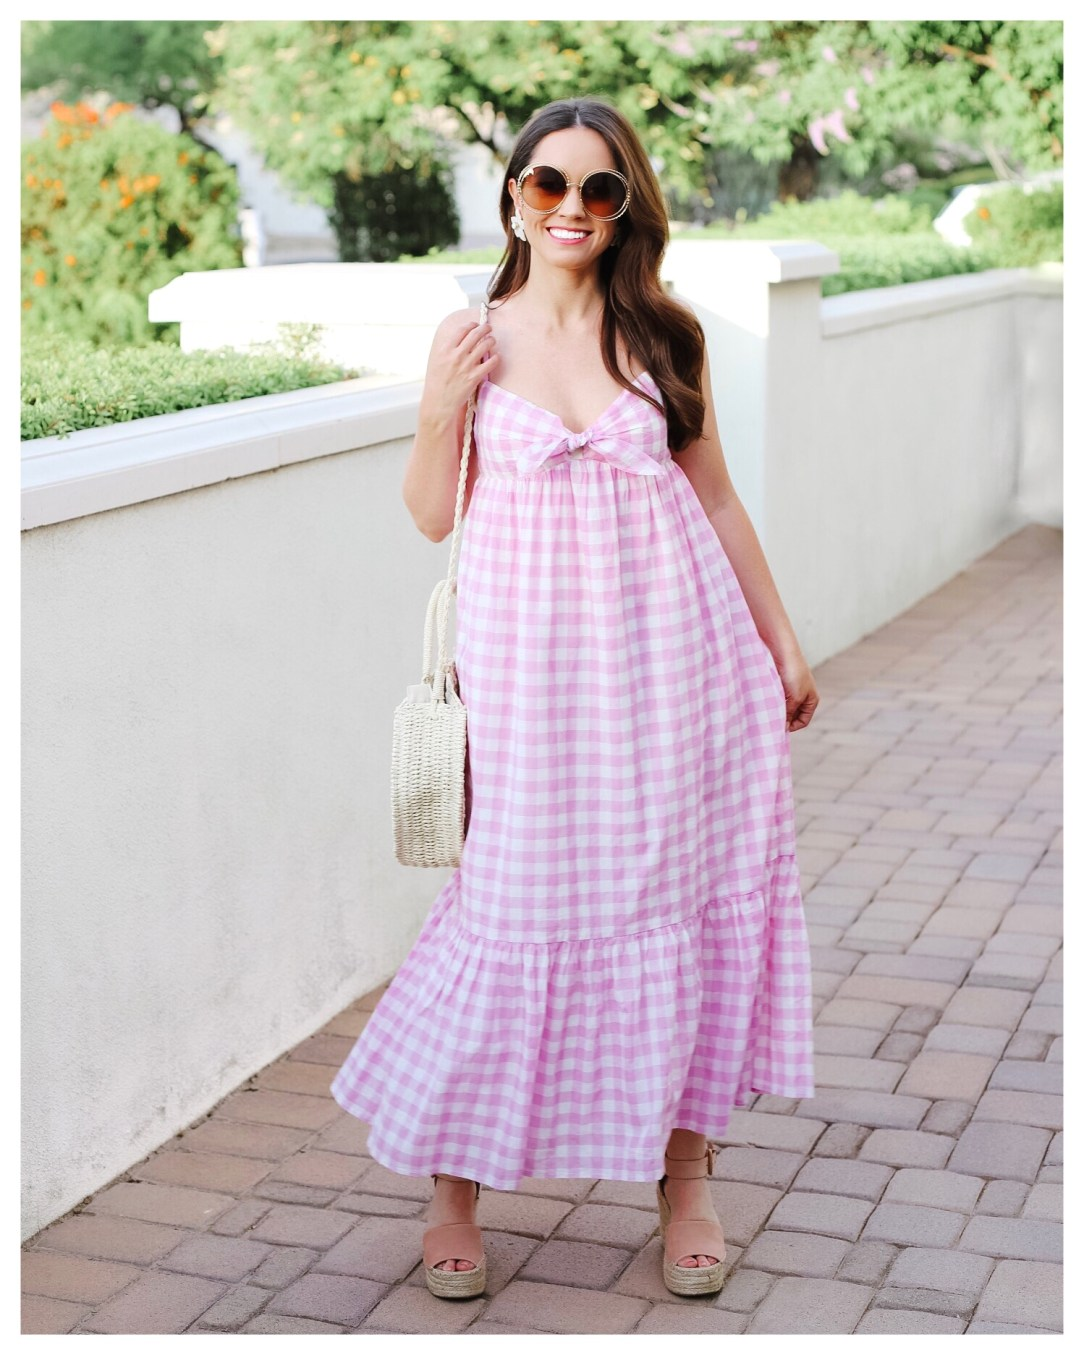 Pink Gingham Dress on Five Foot Feminine